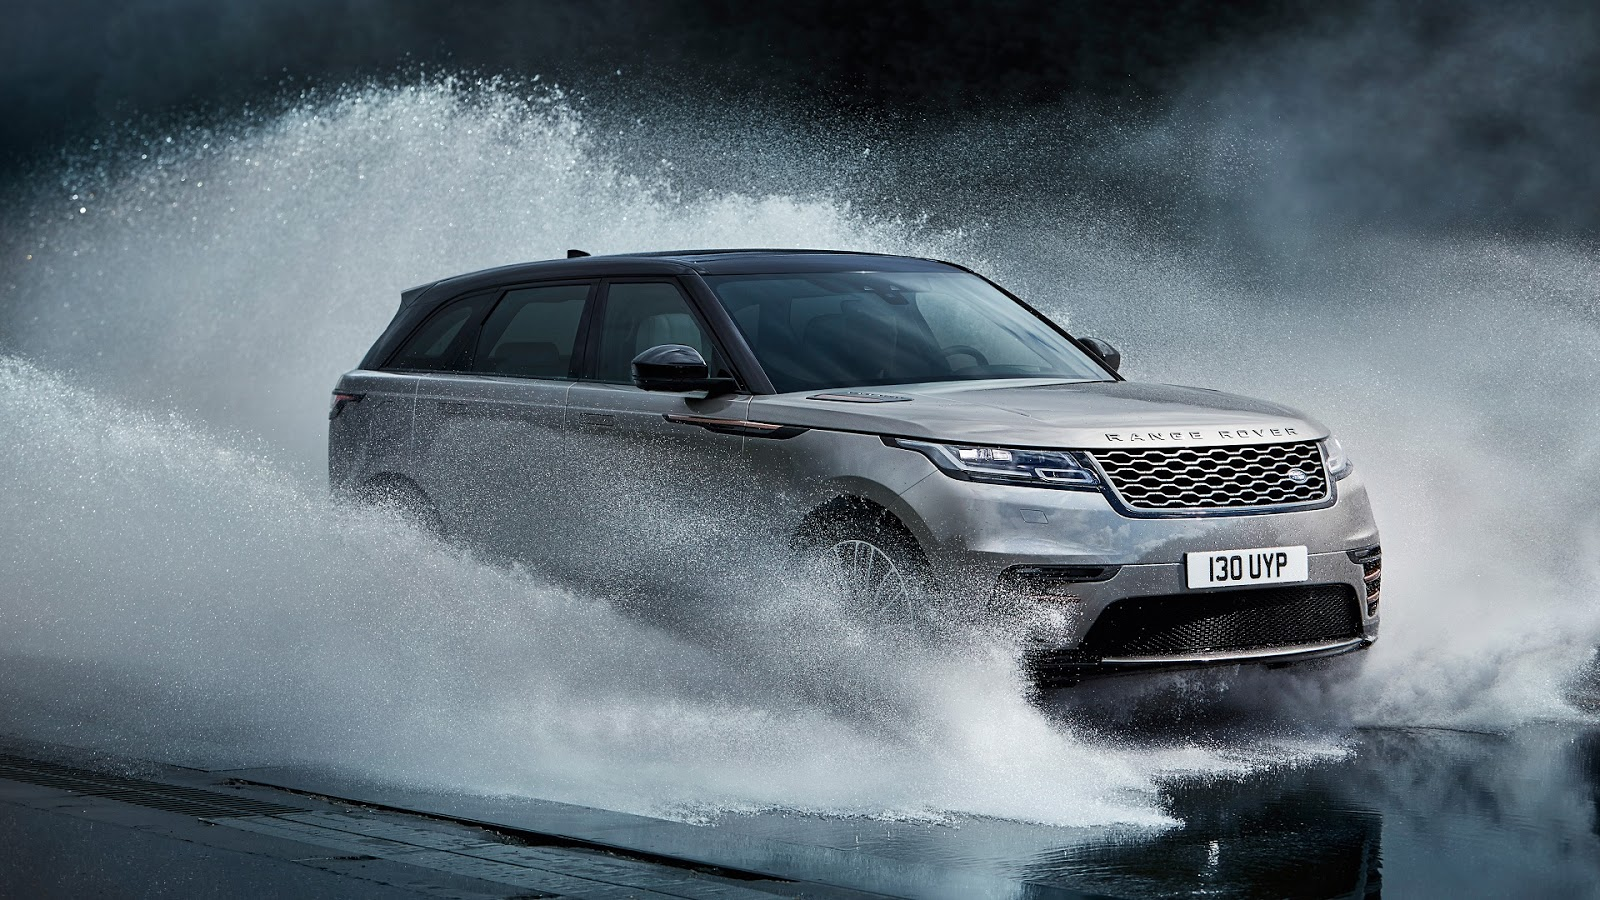 11 Range Rover Velar Wallpapers Wallpapercarax